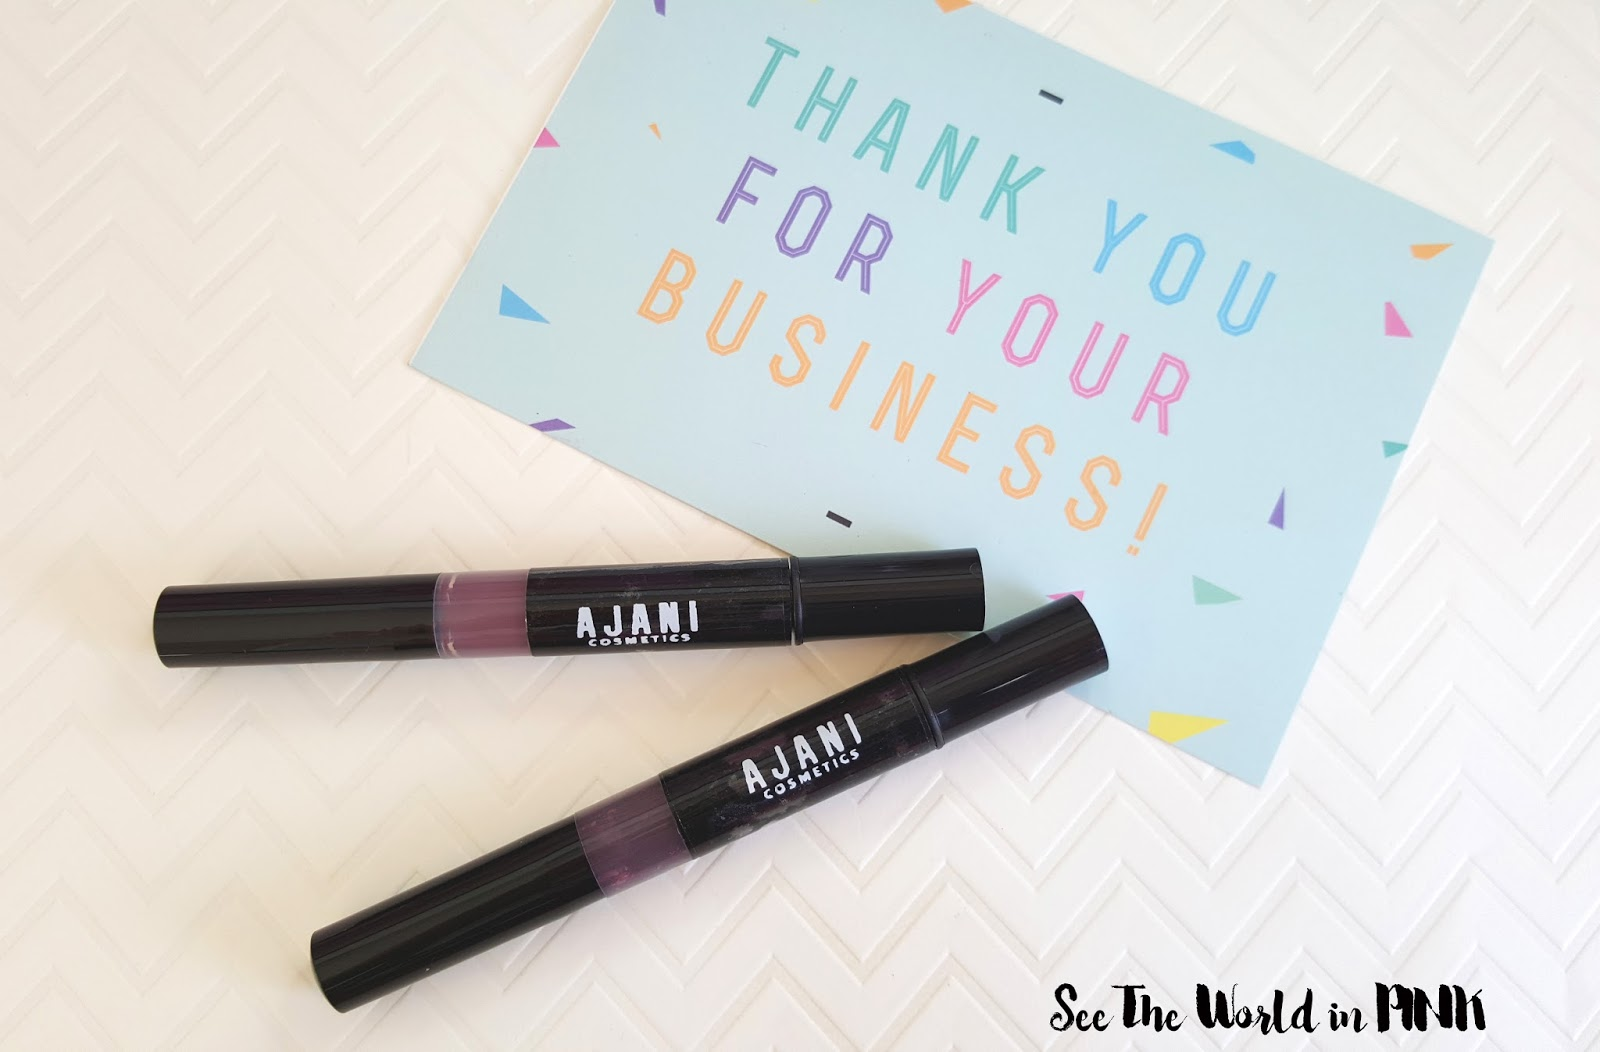 Ajani Cosmetics soft matte lipstick review